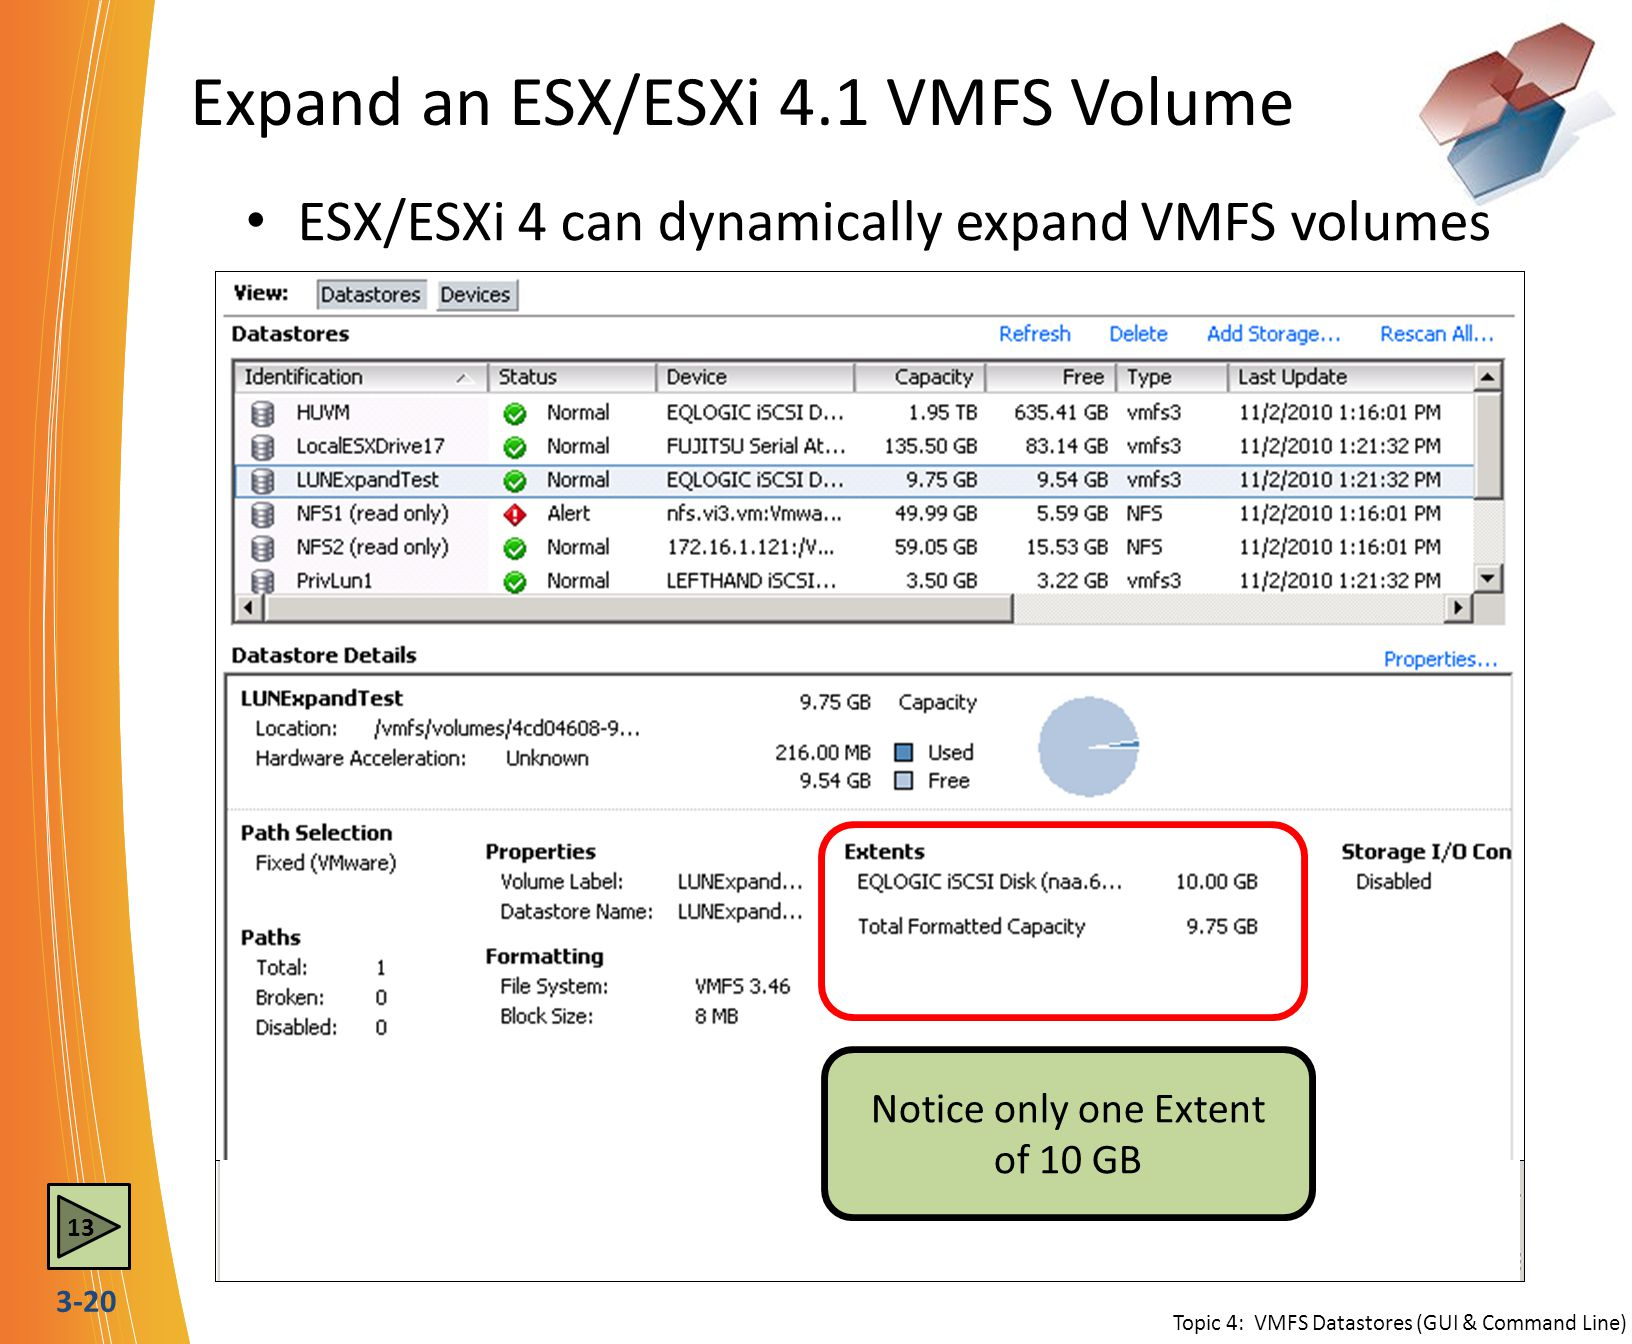 3-20 Expand an ESX/ESXi 4.1 VMFS Volume 13 ESX/ESXi 4 can dynamically expand VMFS volumes Topic 4: VMFS Datastores (GUI & Command Line) The first step